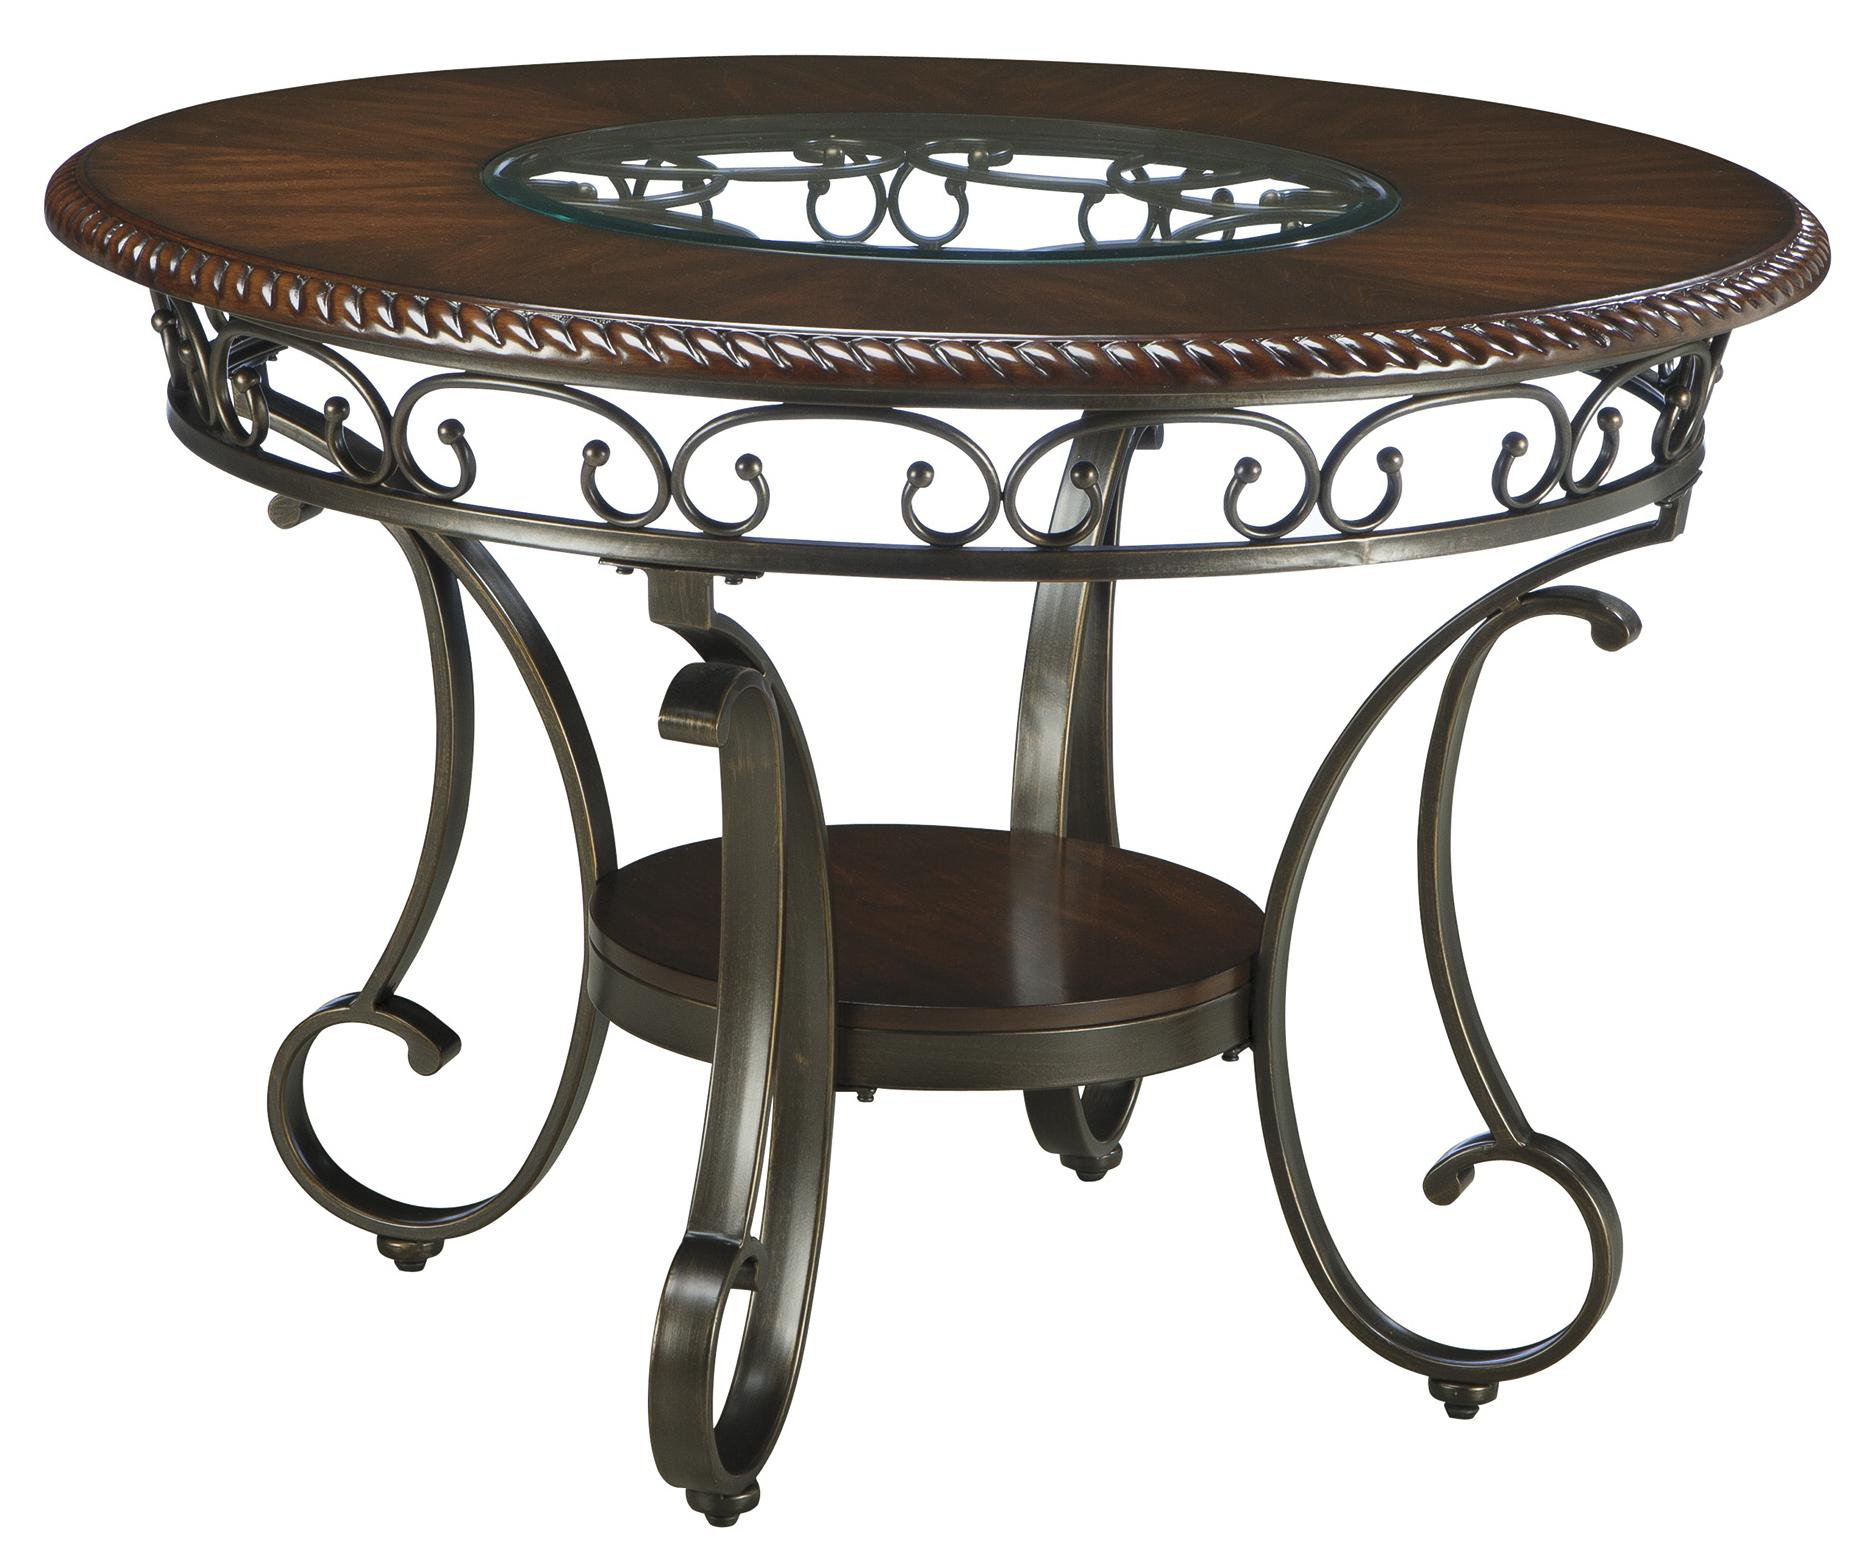 Glambrey Round Dining Room Table by Signature Design by Ashley at Home Furnishings Direct